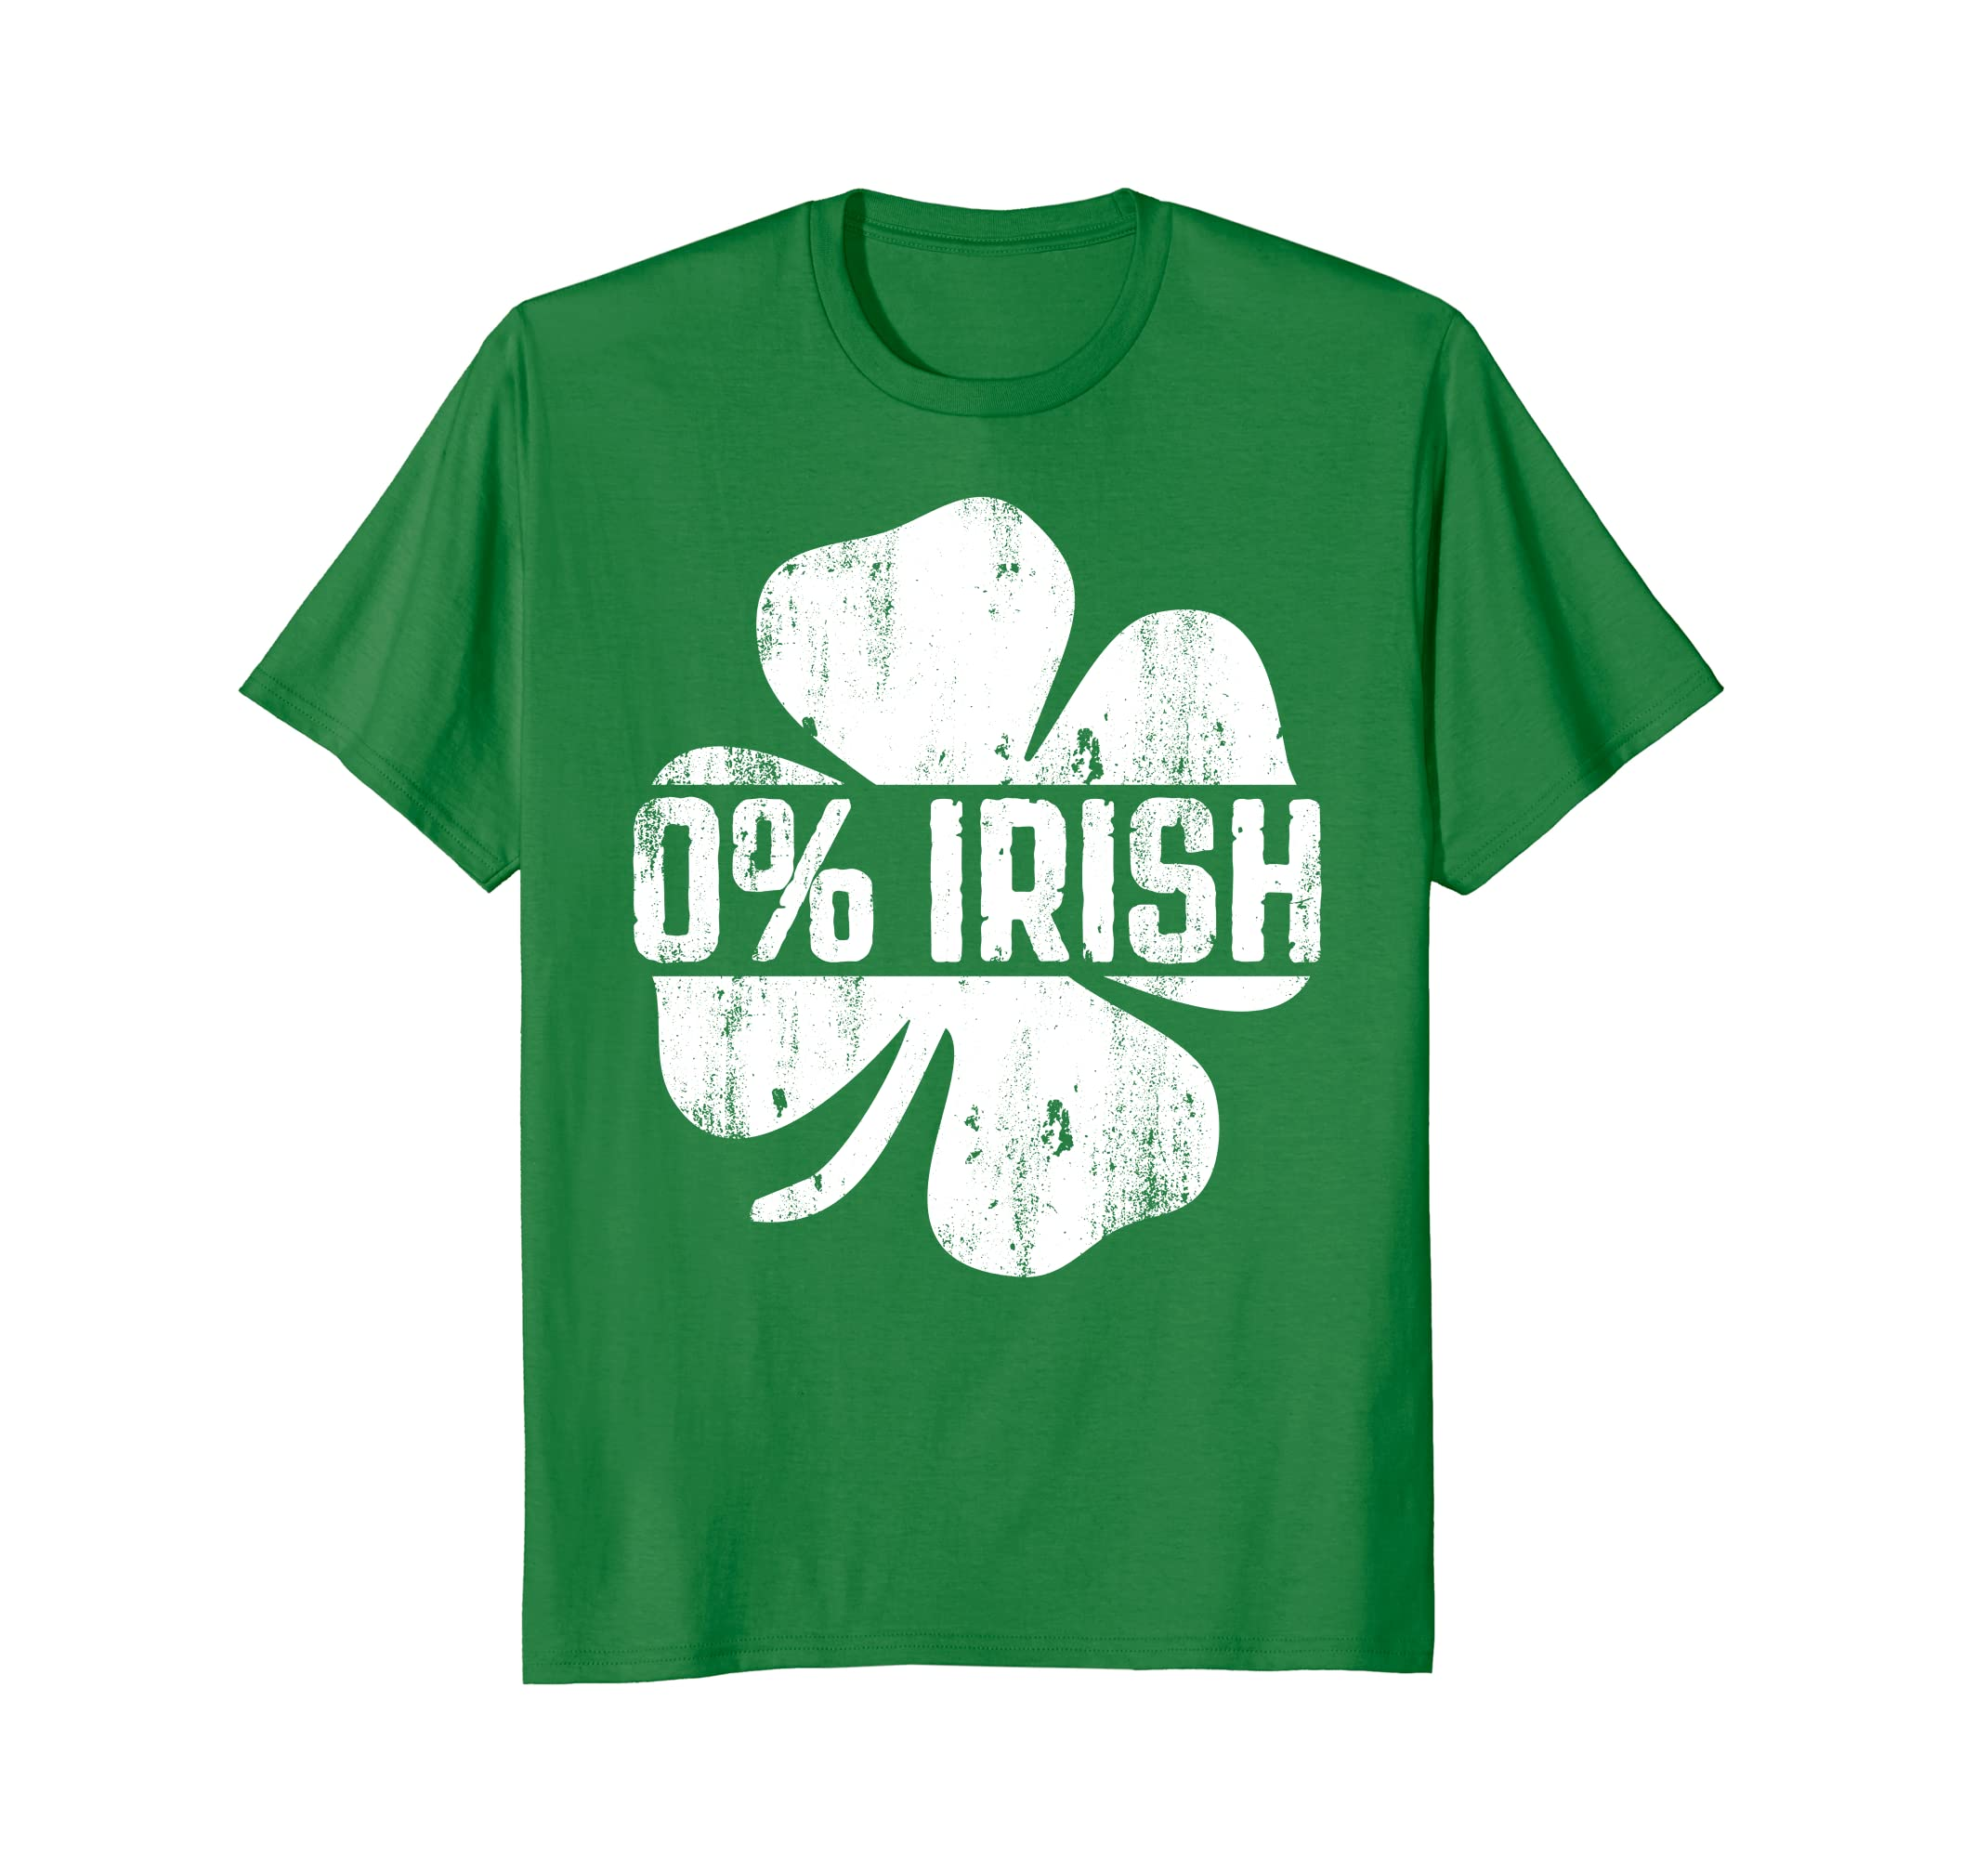 0% Irish T-Shirt Vintage St. Patrick Day Gift Shirt-TH